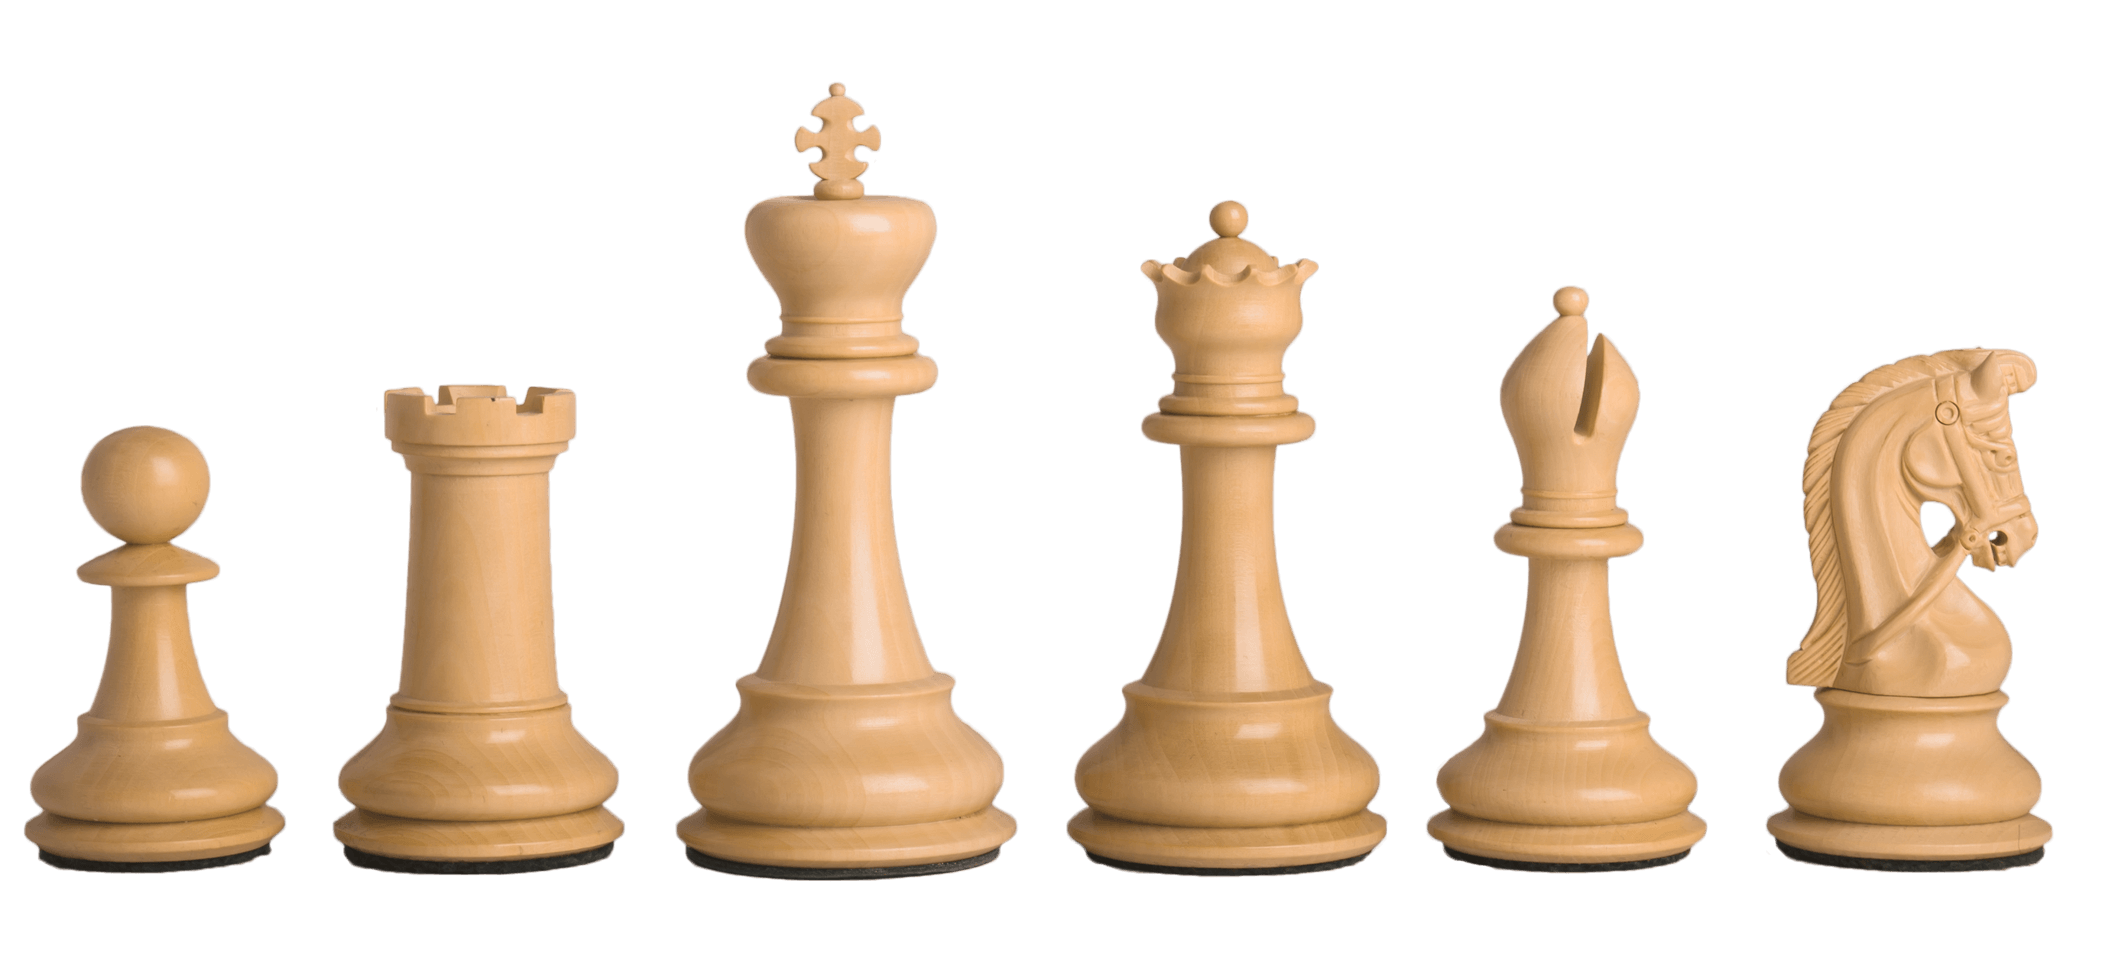 sultan series luxury chess pieces